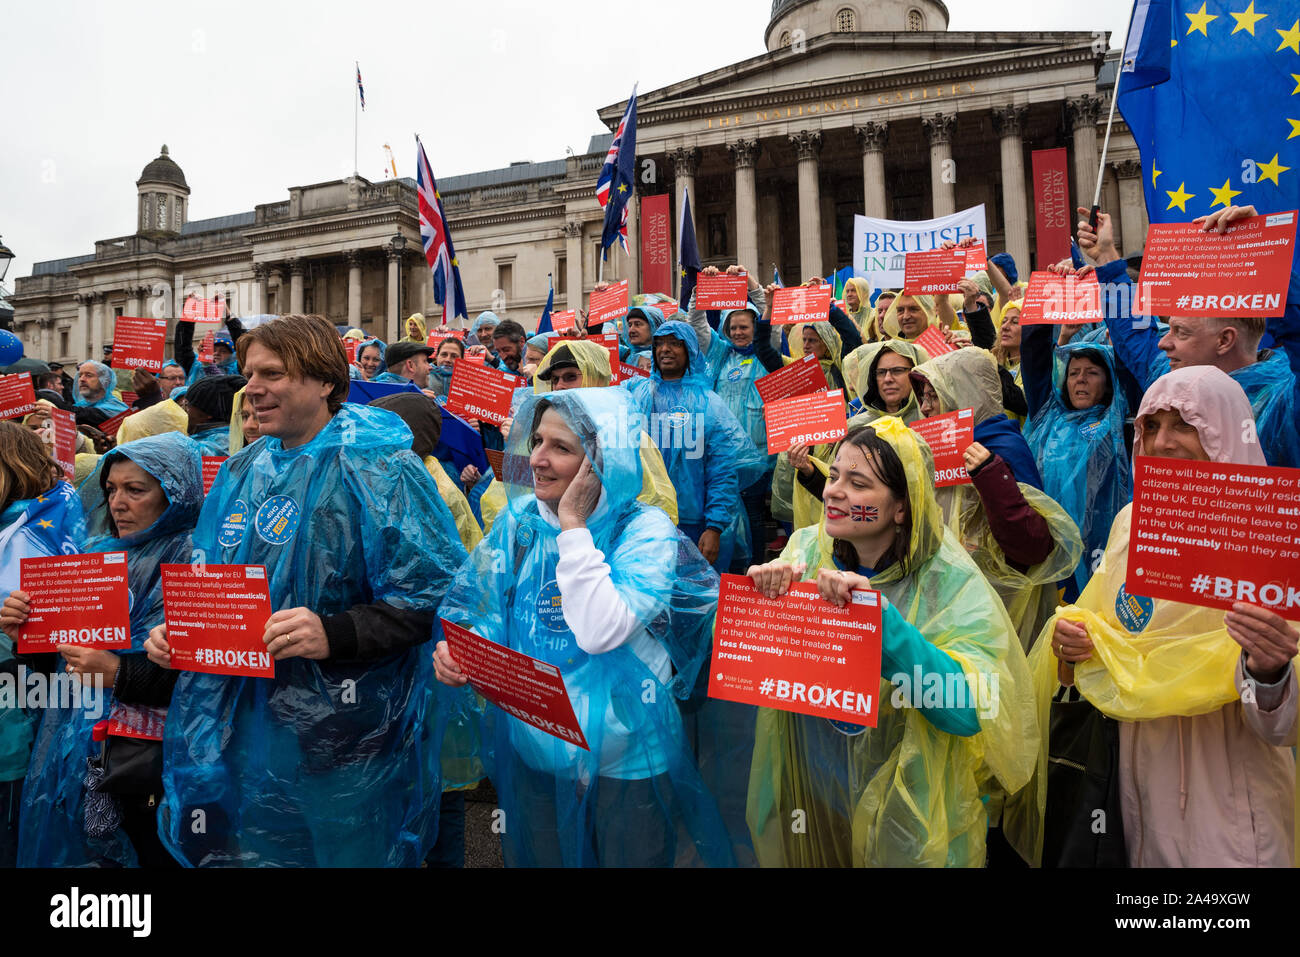 london-uk-12th-october-2019-the3million-protest-trafalgar-square-the3million-is-a-campaign-organisation-for-eu27-citizens-in-the-uk-defending-the-rights-of-eu27-citizens-to-live-work-study-raise-families-and-vote-in-the-uk-as-they-currently-do-now-whatever-the-outcome-of-brexit-here-campigners-braved-continuous-rain-on-steps-at-trafalgar-square-holding-a-banners-and-placards-highlighting-broken-promises-made-to-uk-resident-eu-citizens-by-boris-johnson-priti-patel-and-michael-gove-in-2016-credit-stephen-bellalamy-2A49XGW.jpg